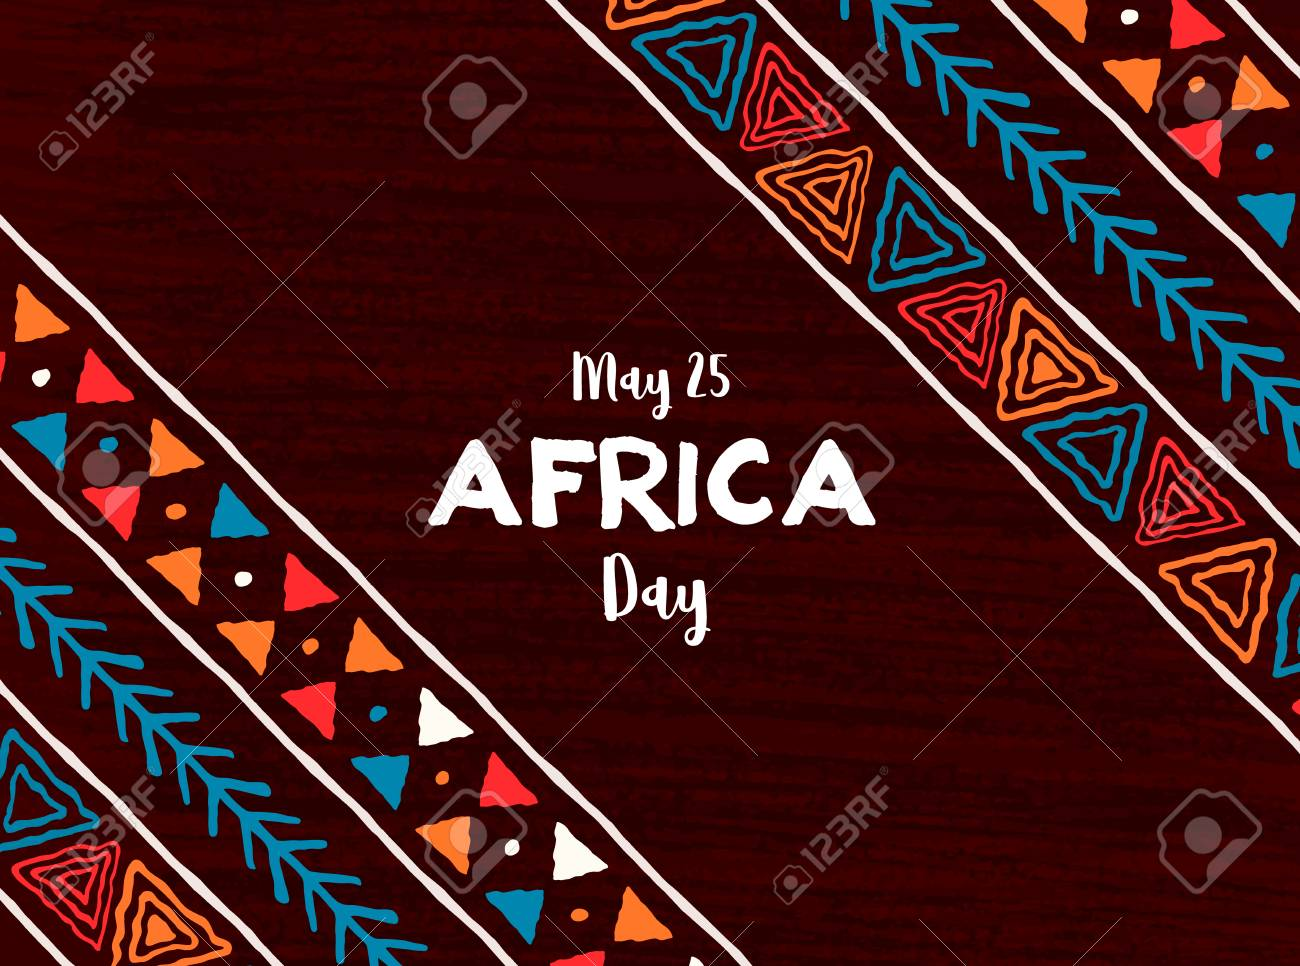 May 25 Africa Day greeting card illustration with traditional tribal hand drawn art for african freedom holiday. - 122582258